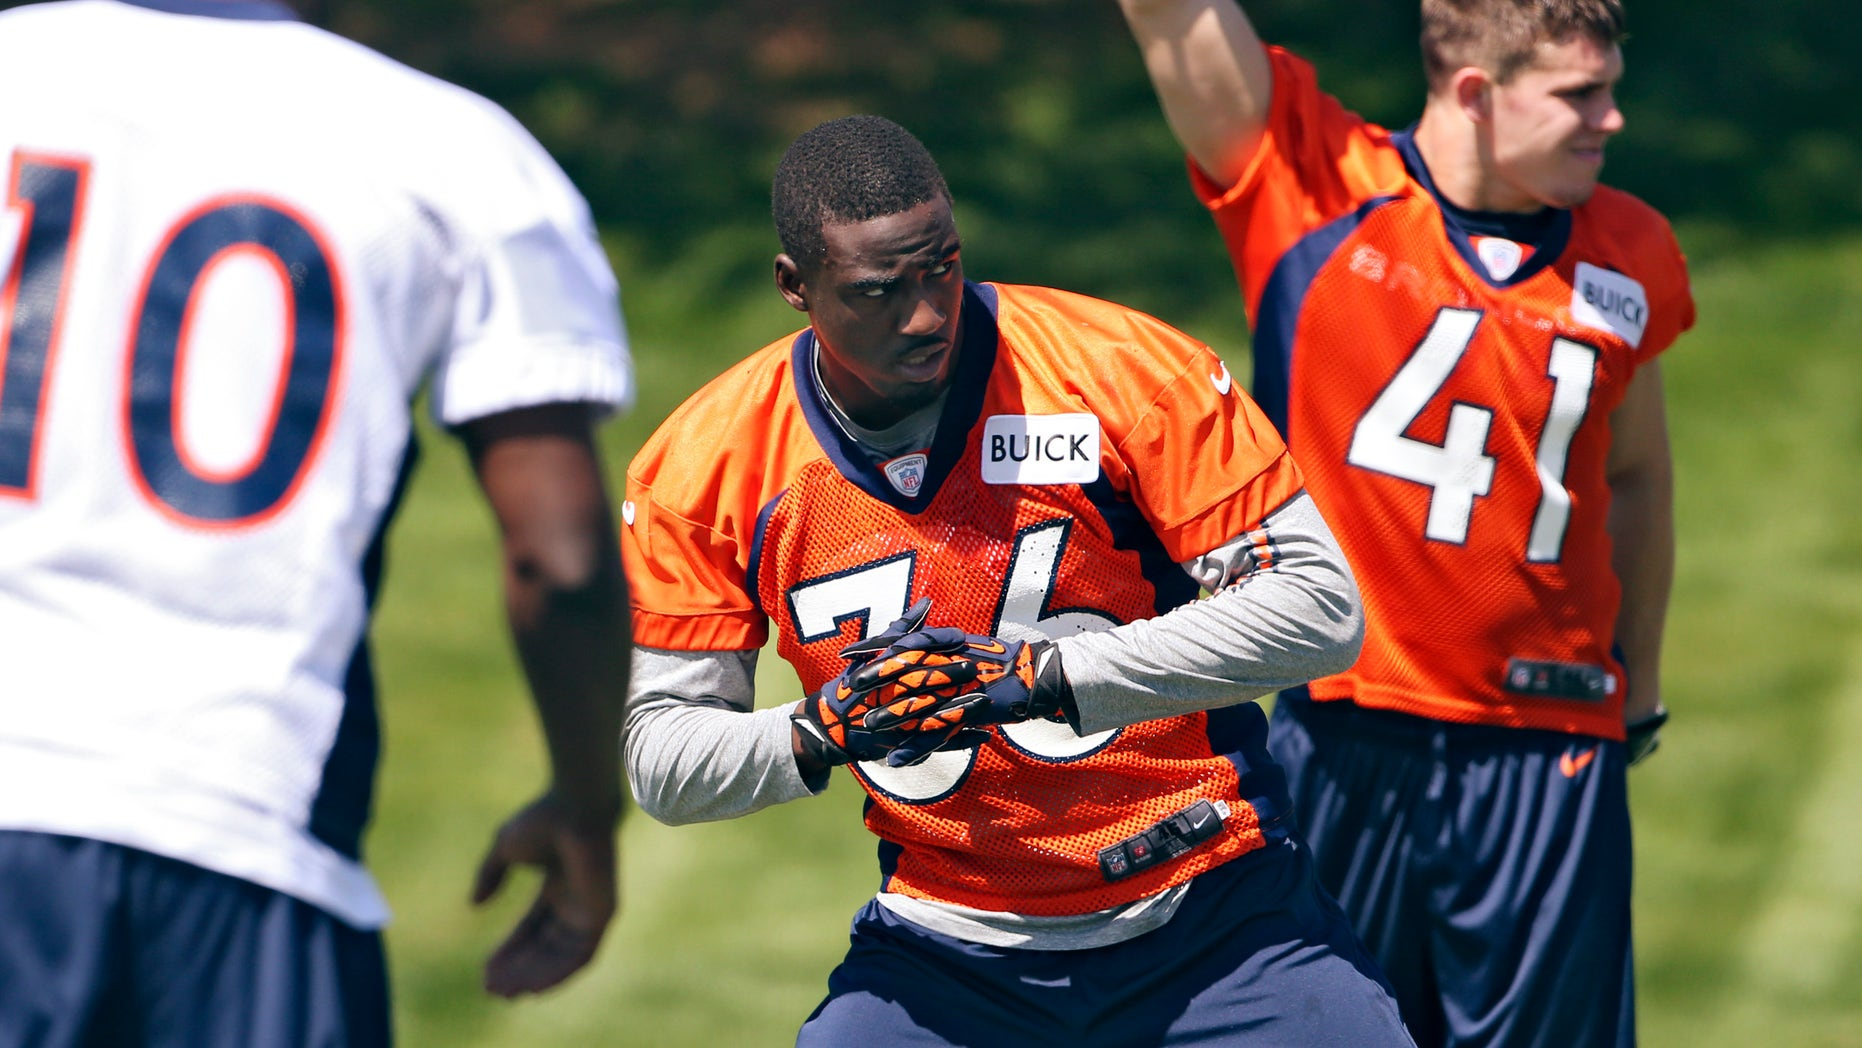 Denver Broncos cornerback Kayvon Webster (36) stretches with teammates Gerell Robinson (10) and Ross Rasner (41) during NFL football rookie minicamp at the team's training facility in Englewood, Colo., Saturday, May 11, 2013. (AP Photo/Ed Andrieski)